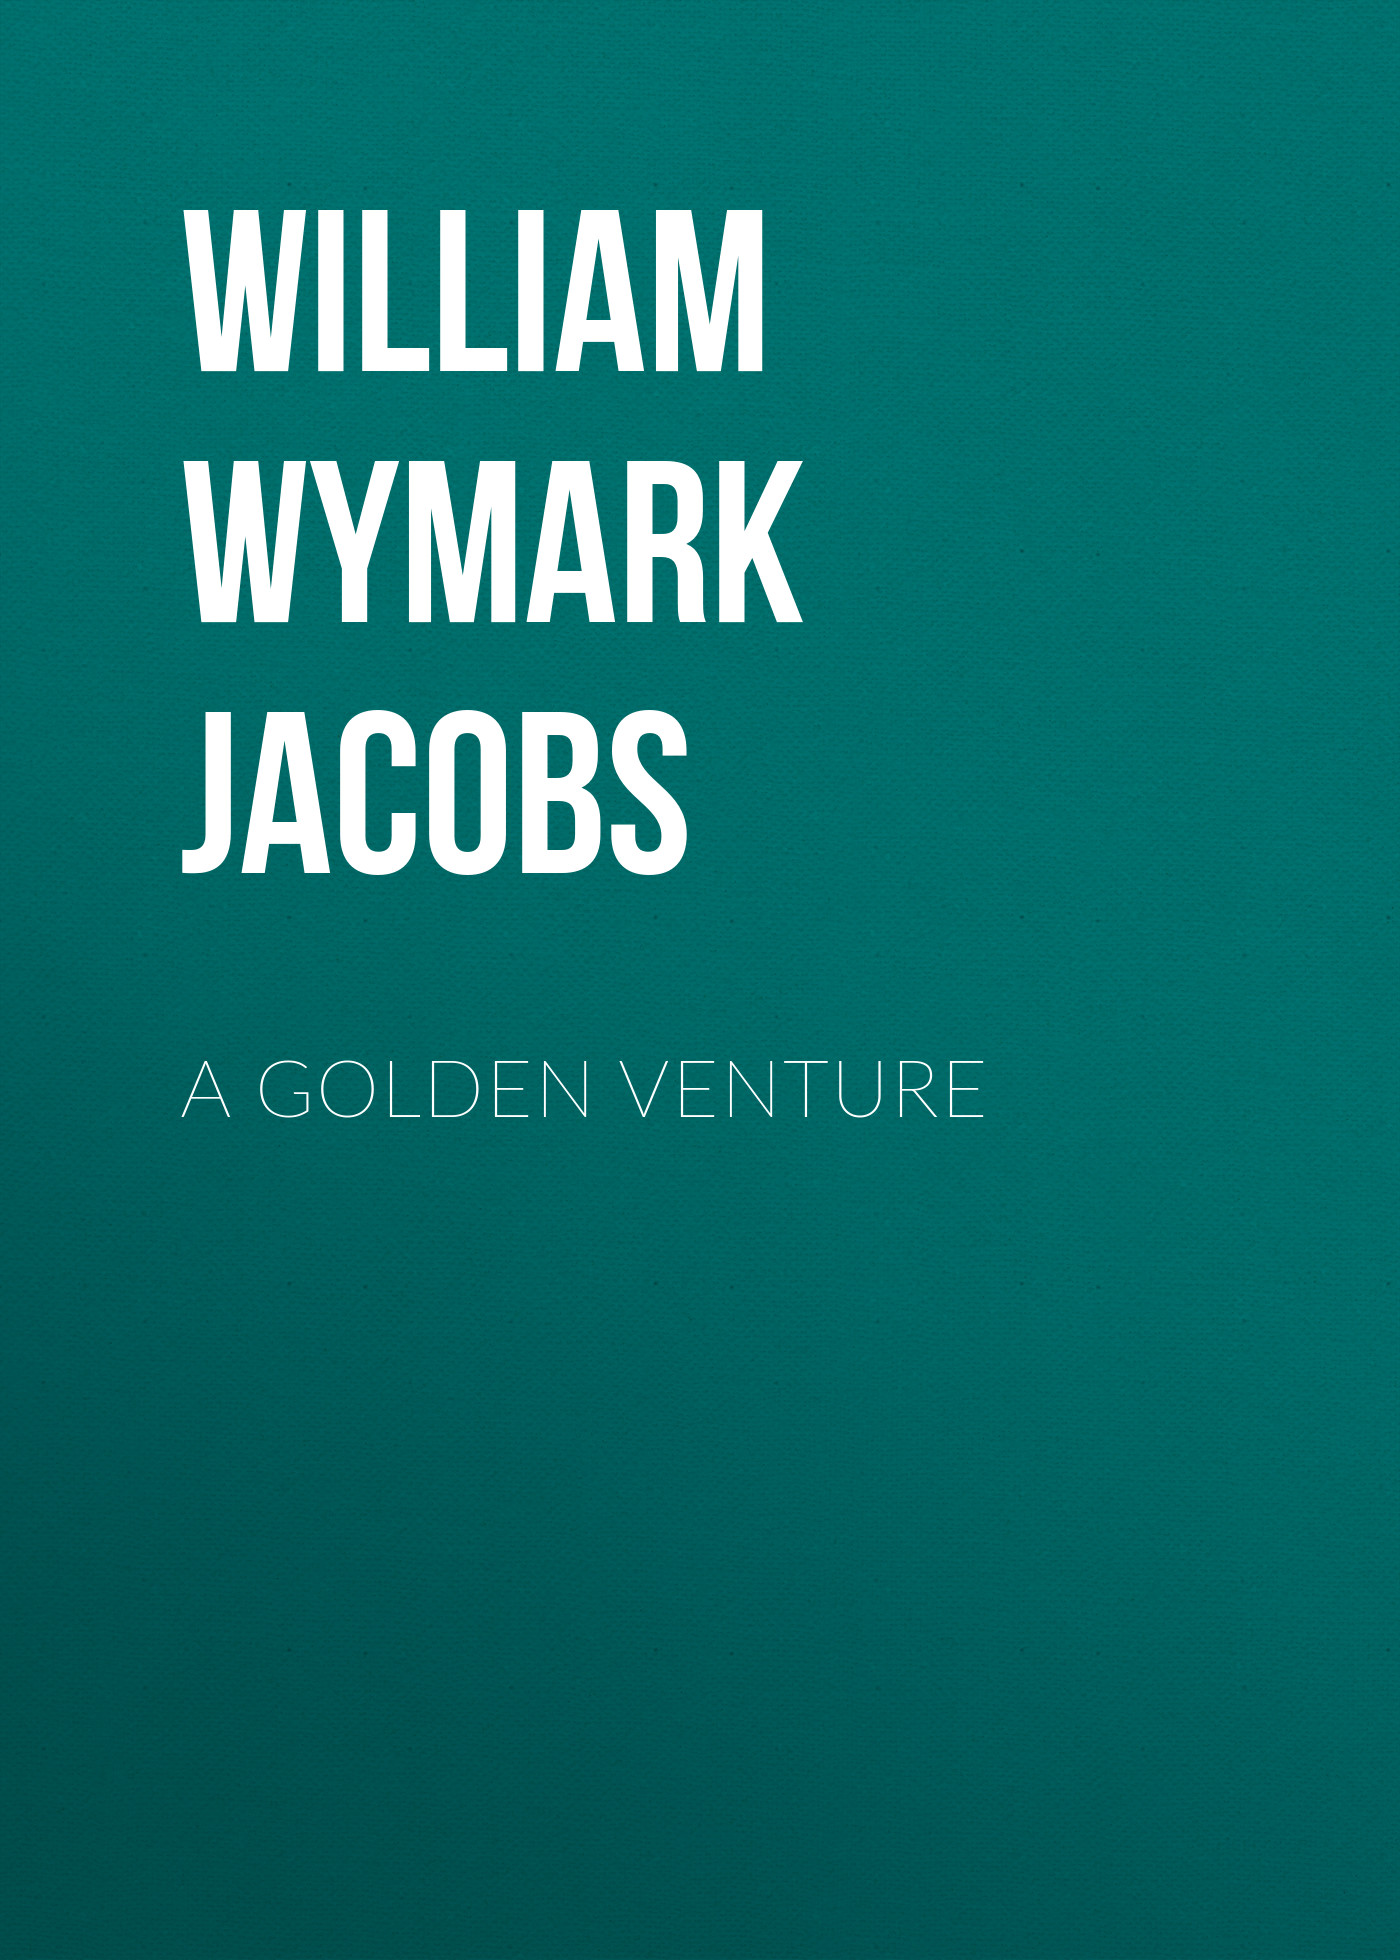 лучшая цена William Wymark Jacobs A Golden Venture